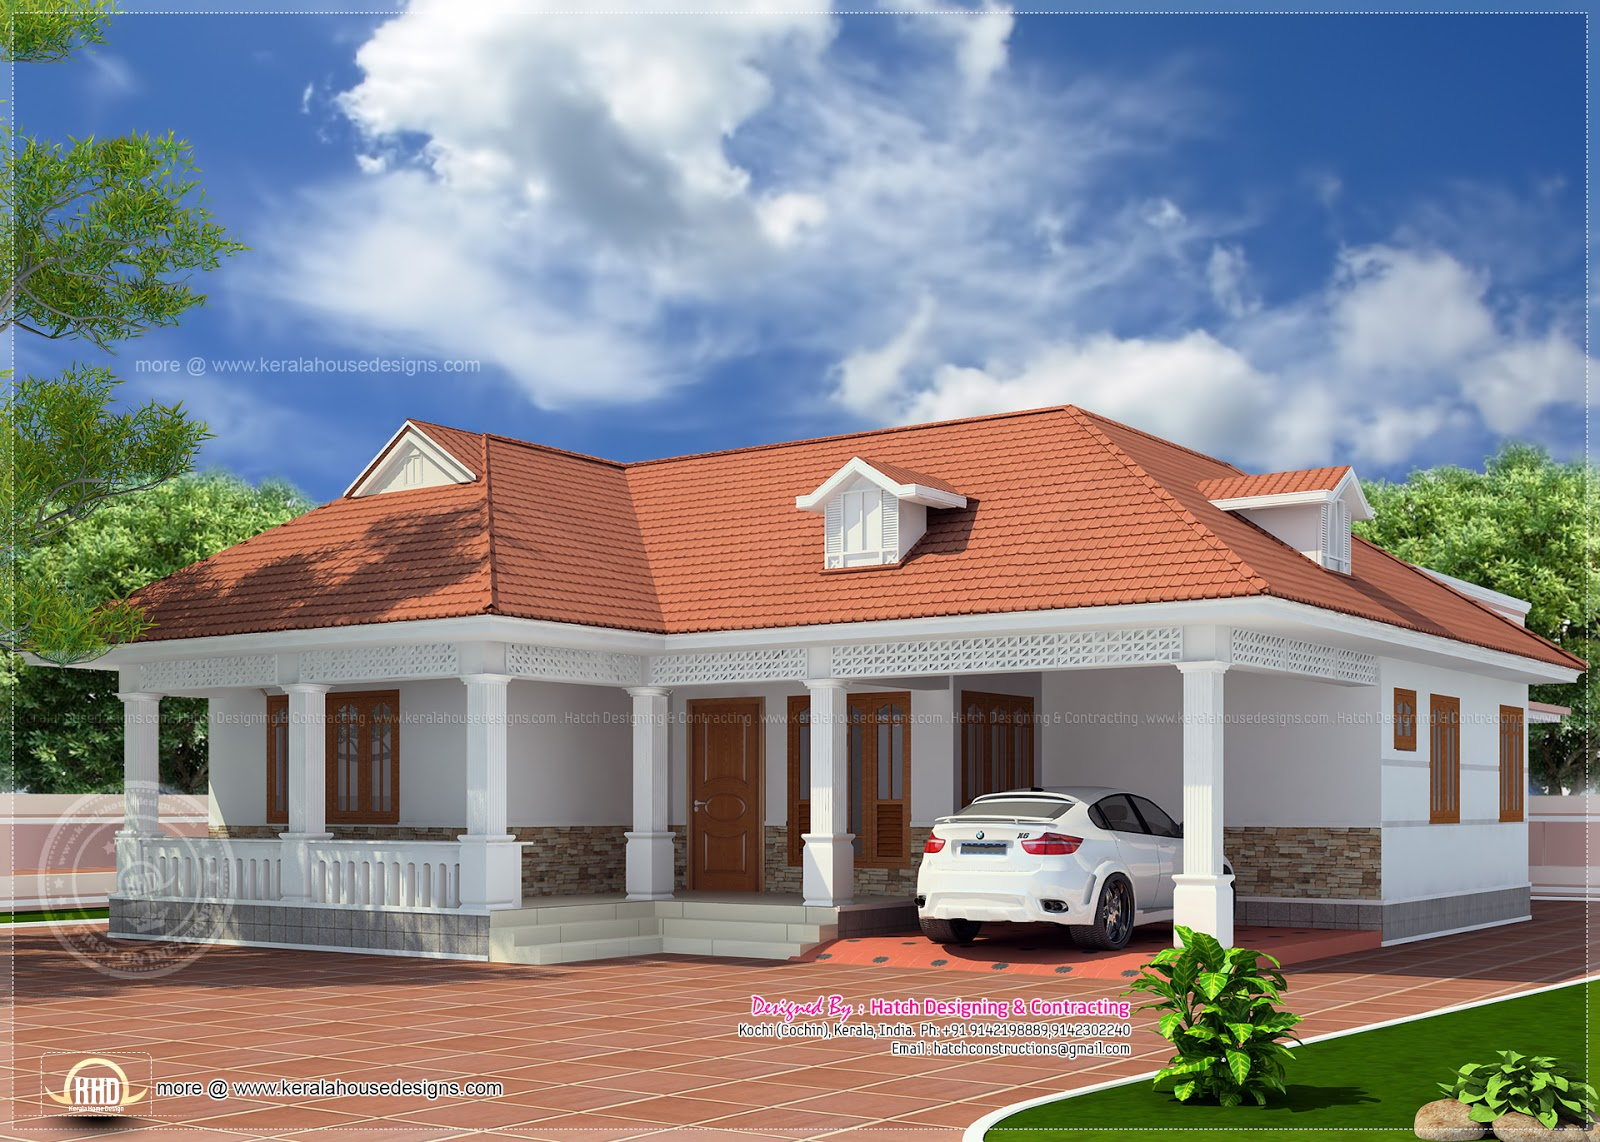 1850 kerala style home elevation kerala home design and floor plans - Kerala exterior model homes ...